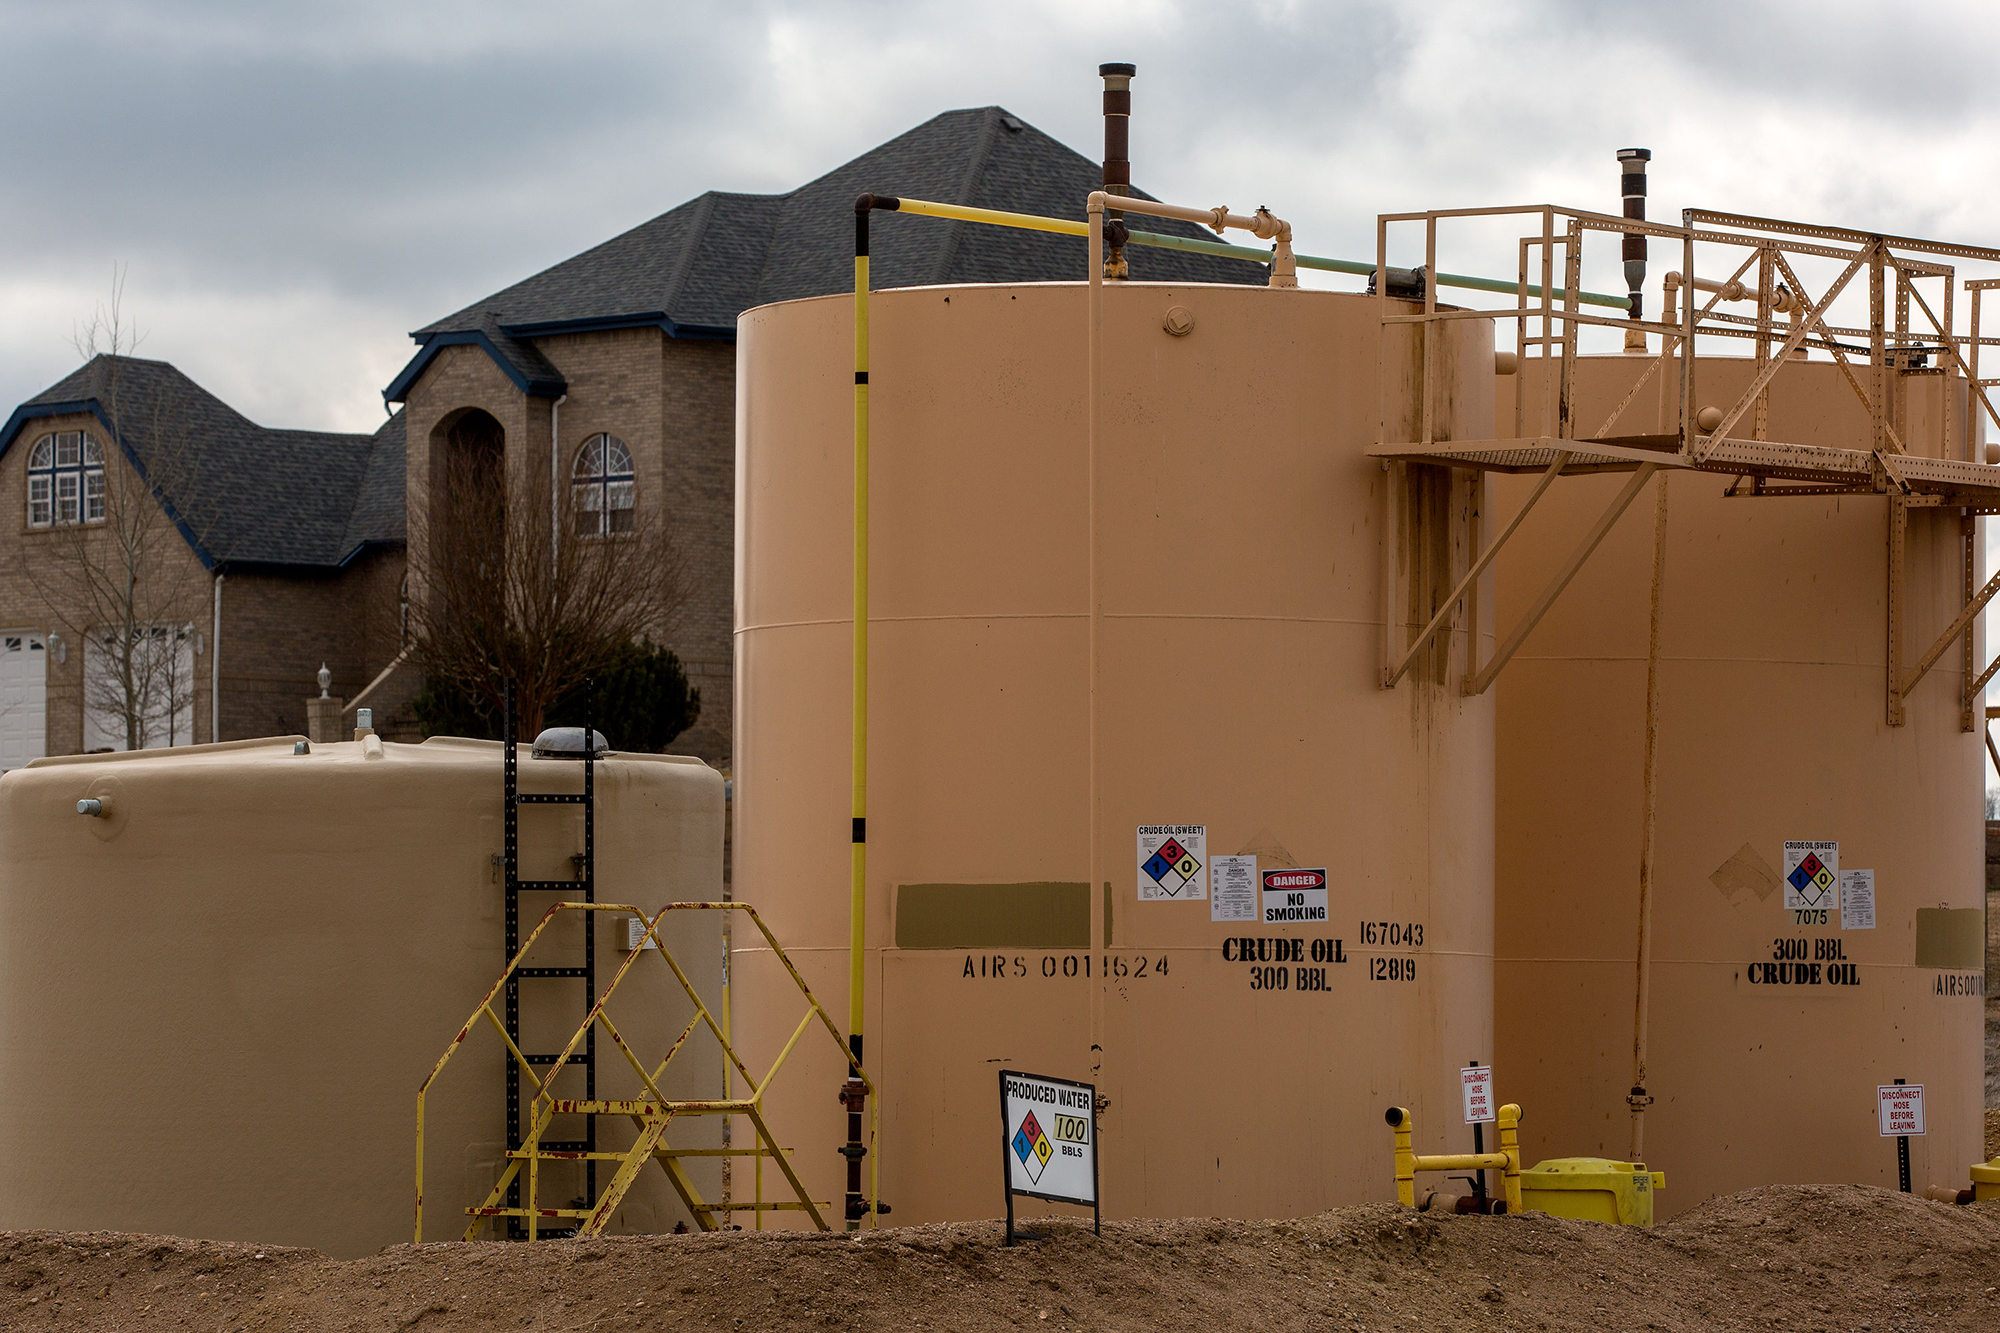 Photo: Weld County Oil And Gas Near Homes 10 HV